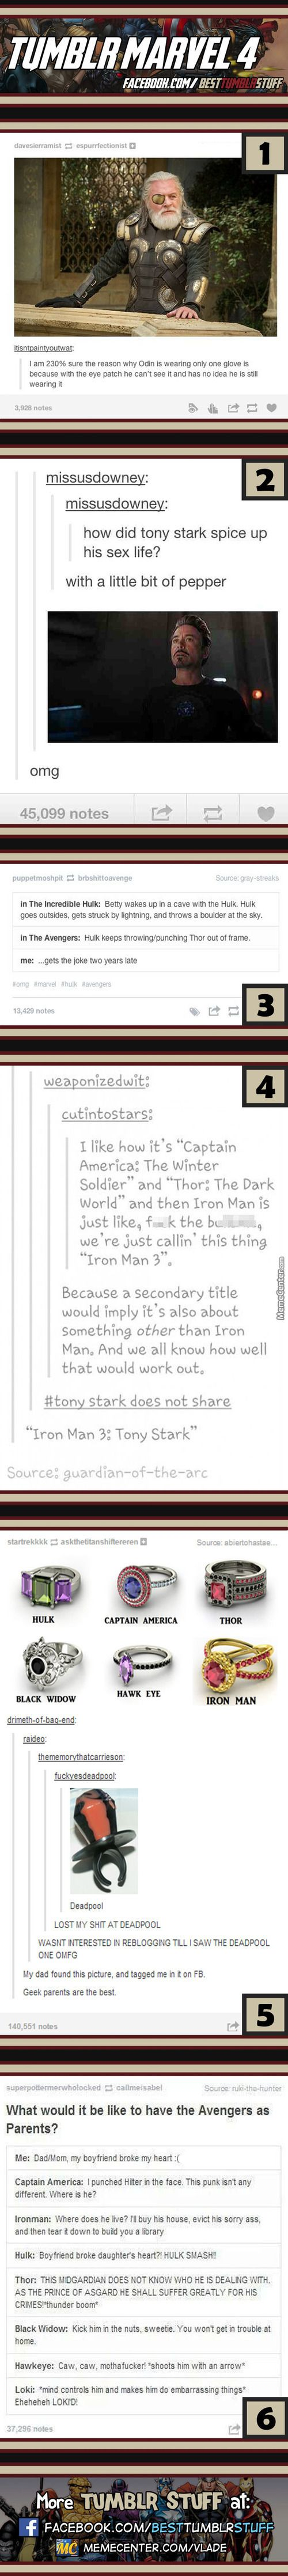 Tumblr Marvel Memes. Best Collection of Funny Tumblr Marvel Pictures